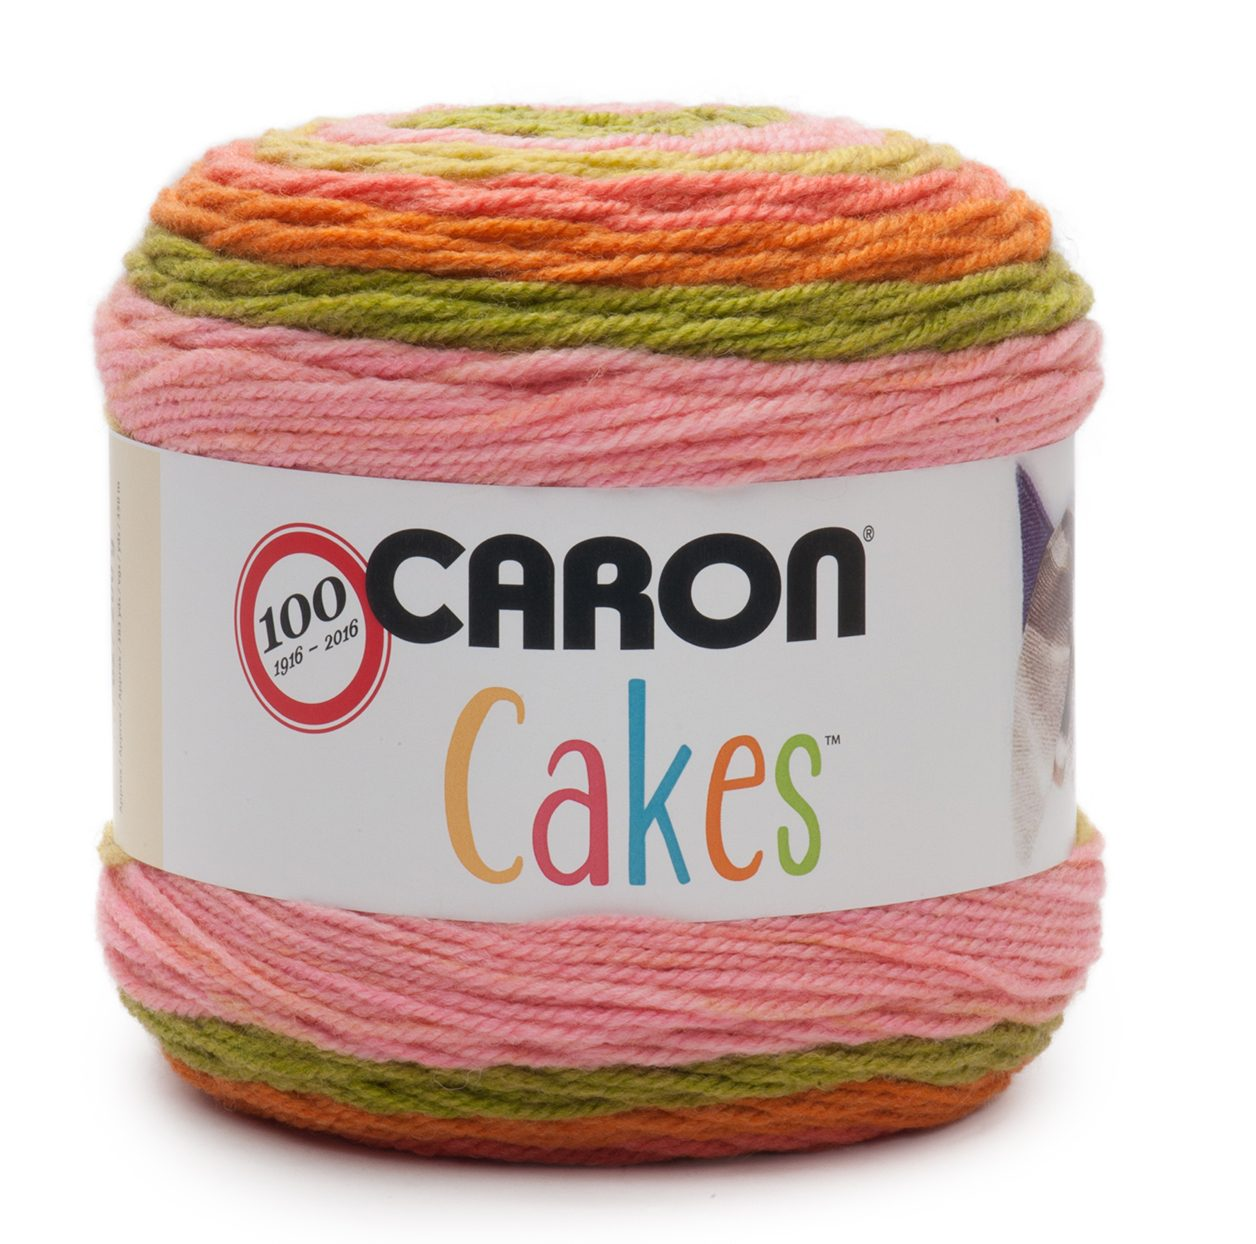 NEW Caron Cakes Strawberry Kiwi Yarn - one of 8 new colorways for 2017 plus free patterns featuring the original Caron Cakes colors